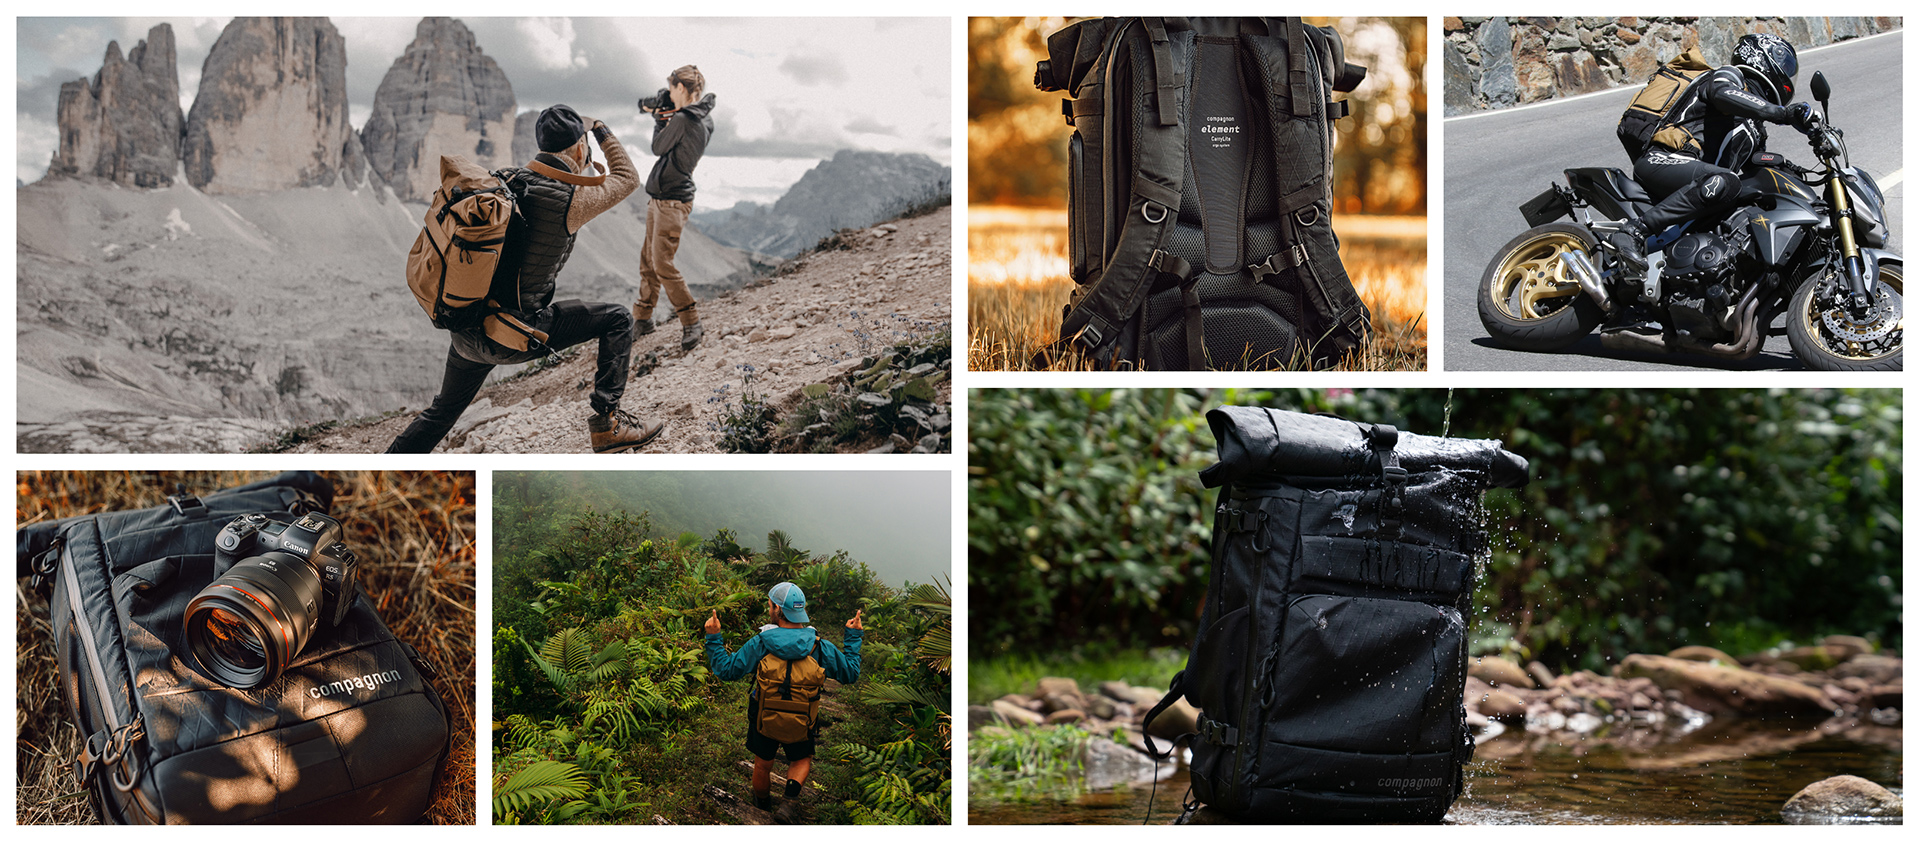 compagnon_Element-Backpack_Collage_VolcanoBlack_DesertBrown_Camerabackpack